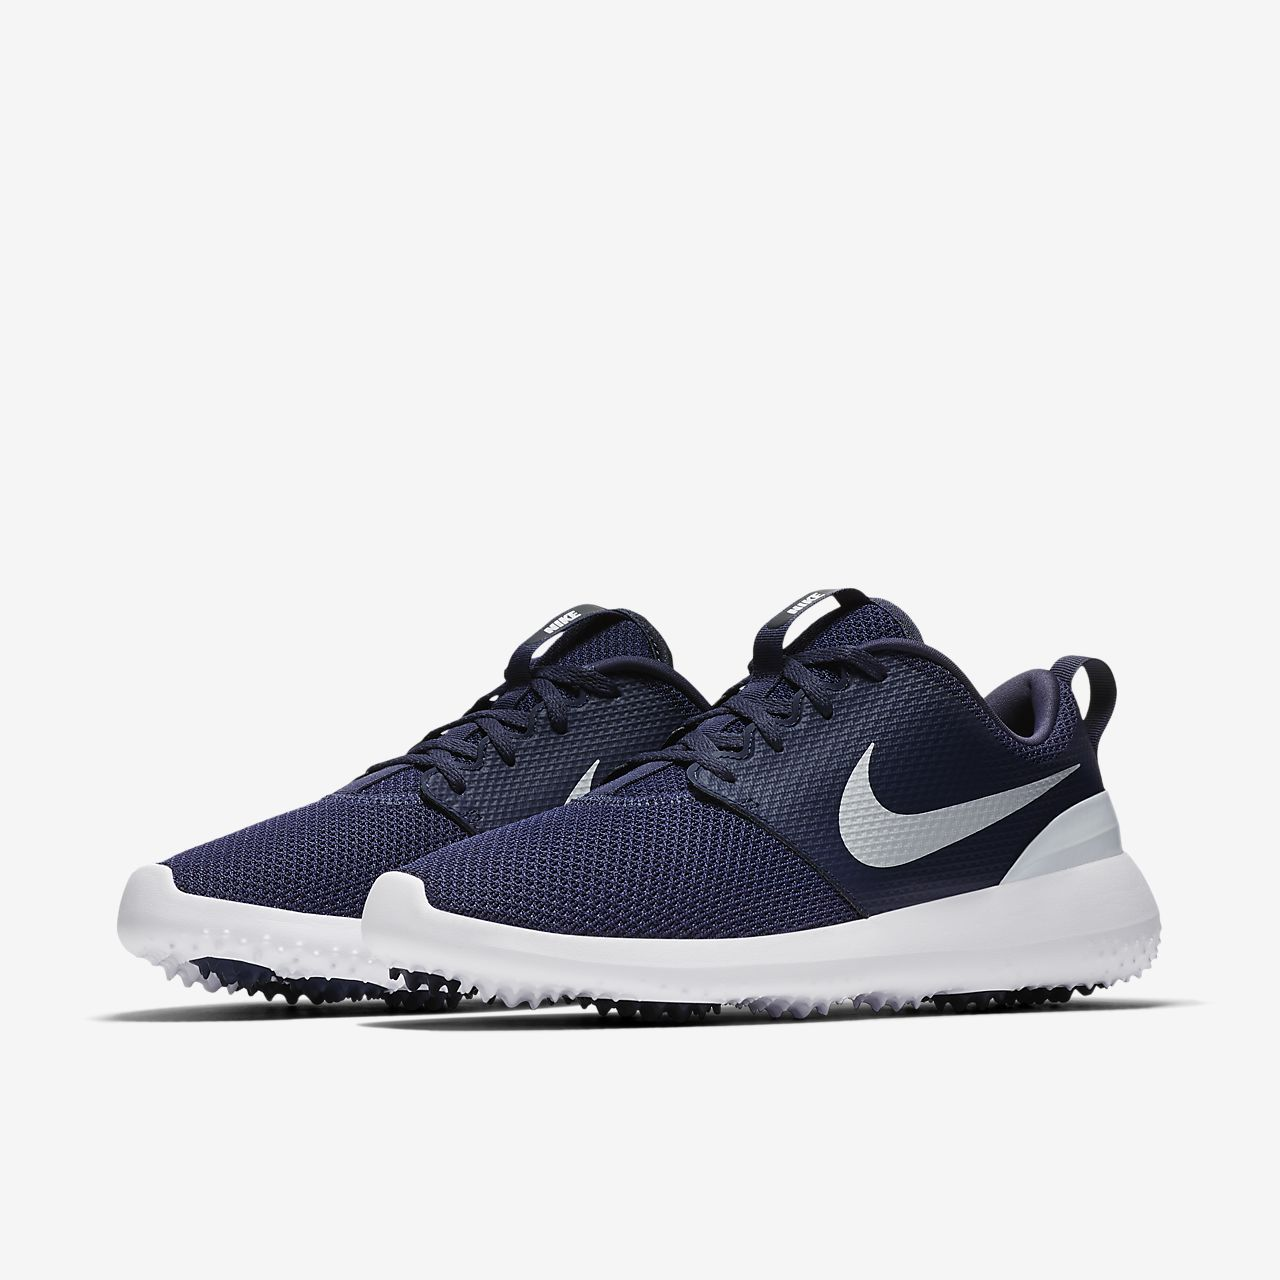 0860fdab5c36 Nike Roshe G Men s Golf Shoe